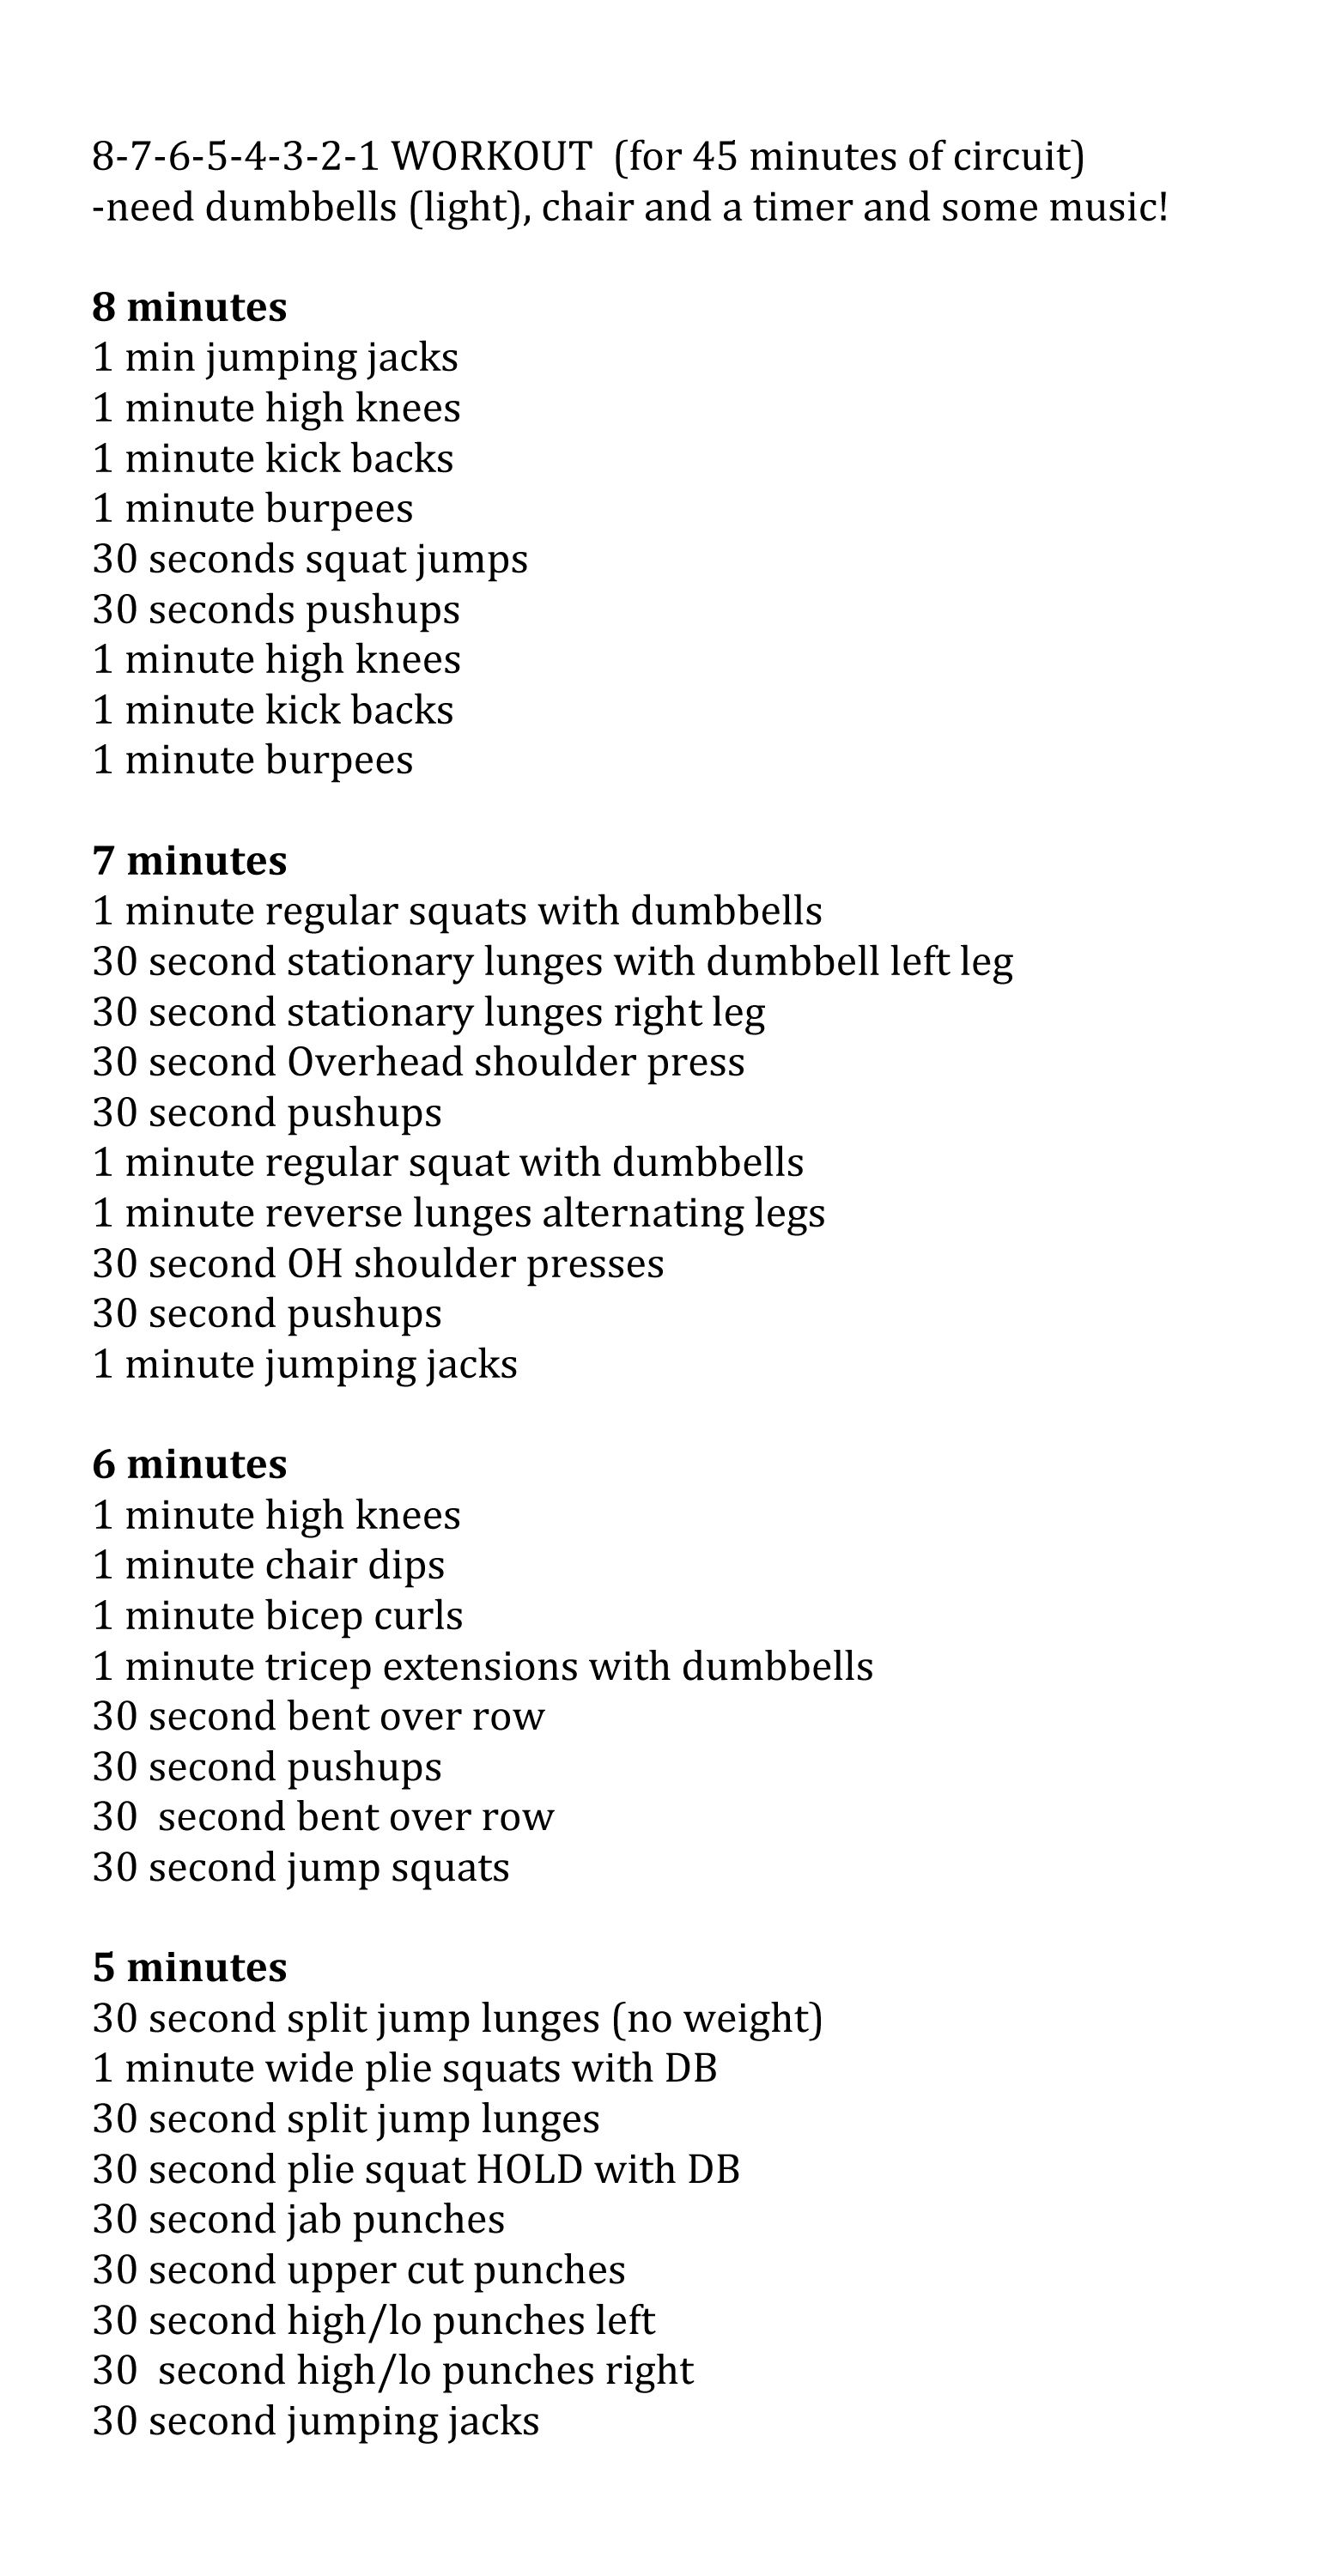 Circuit Workout At Home Or Gym